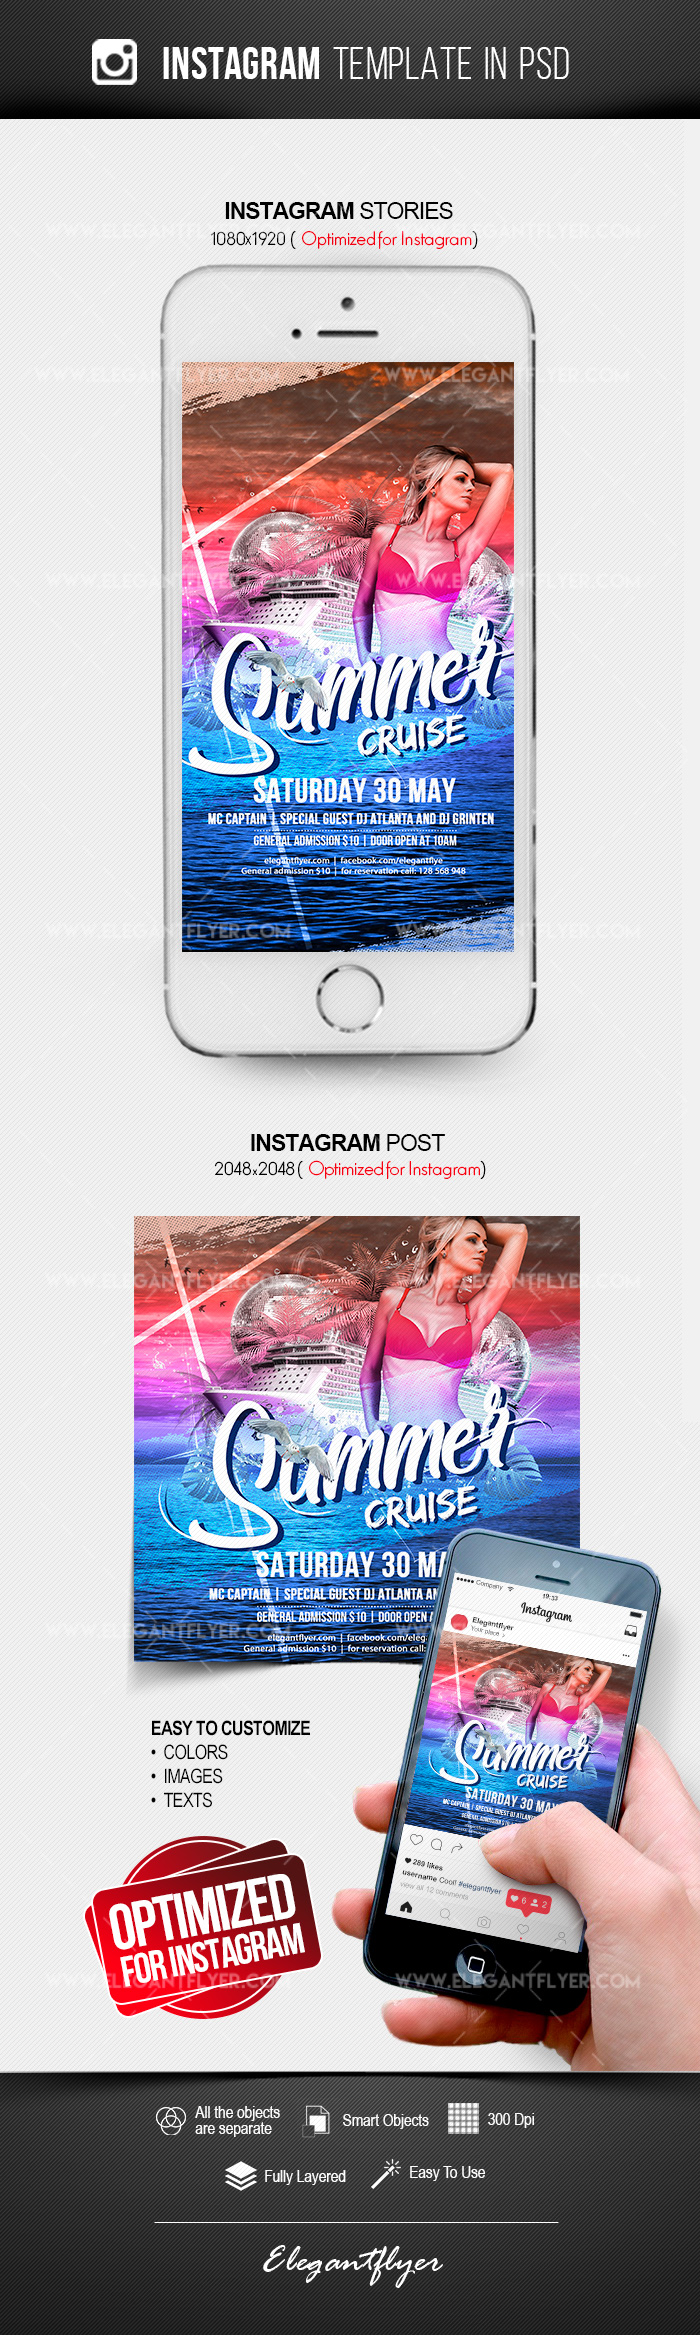 Summer Cruise – Instagram Stories Template in PSD + Post Templates